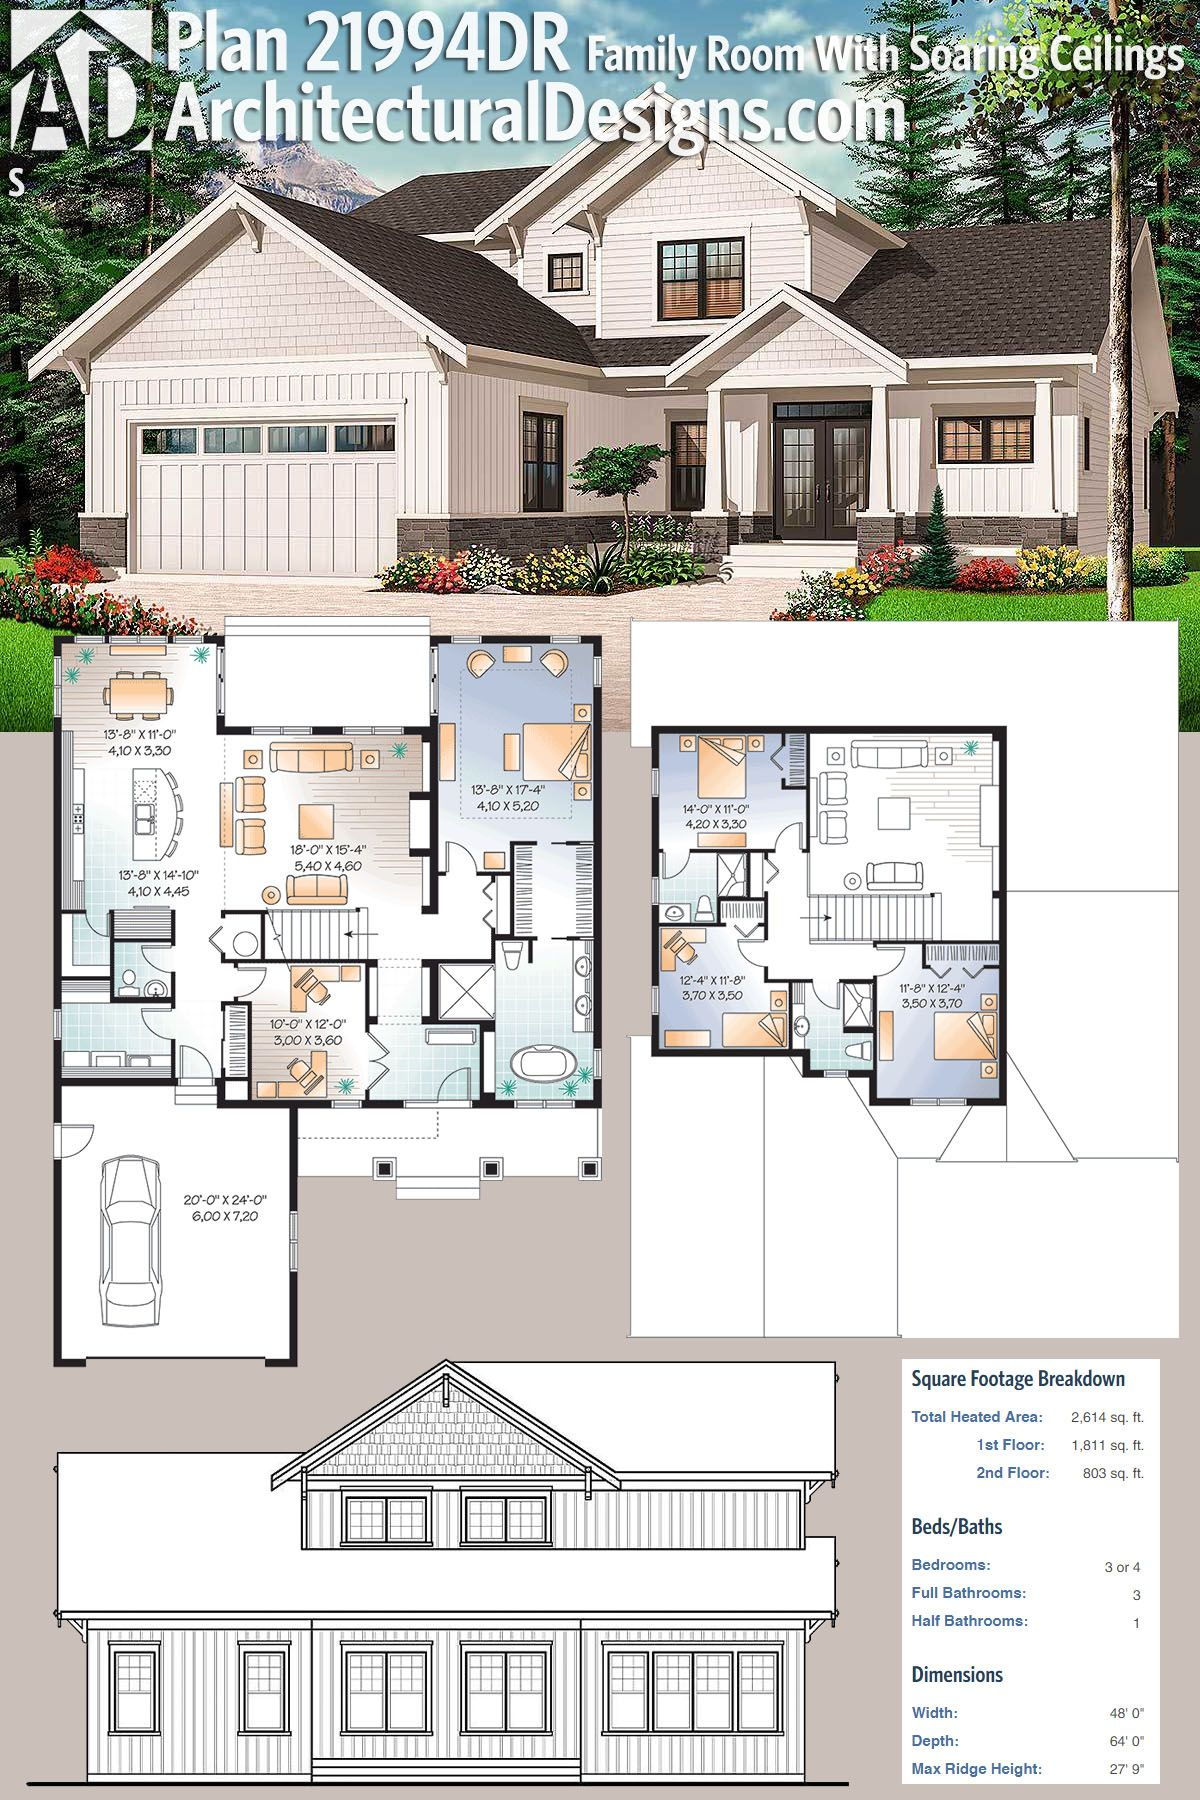 Architectural Designs House Plan 21994DR gives you